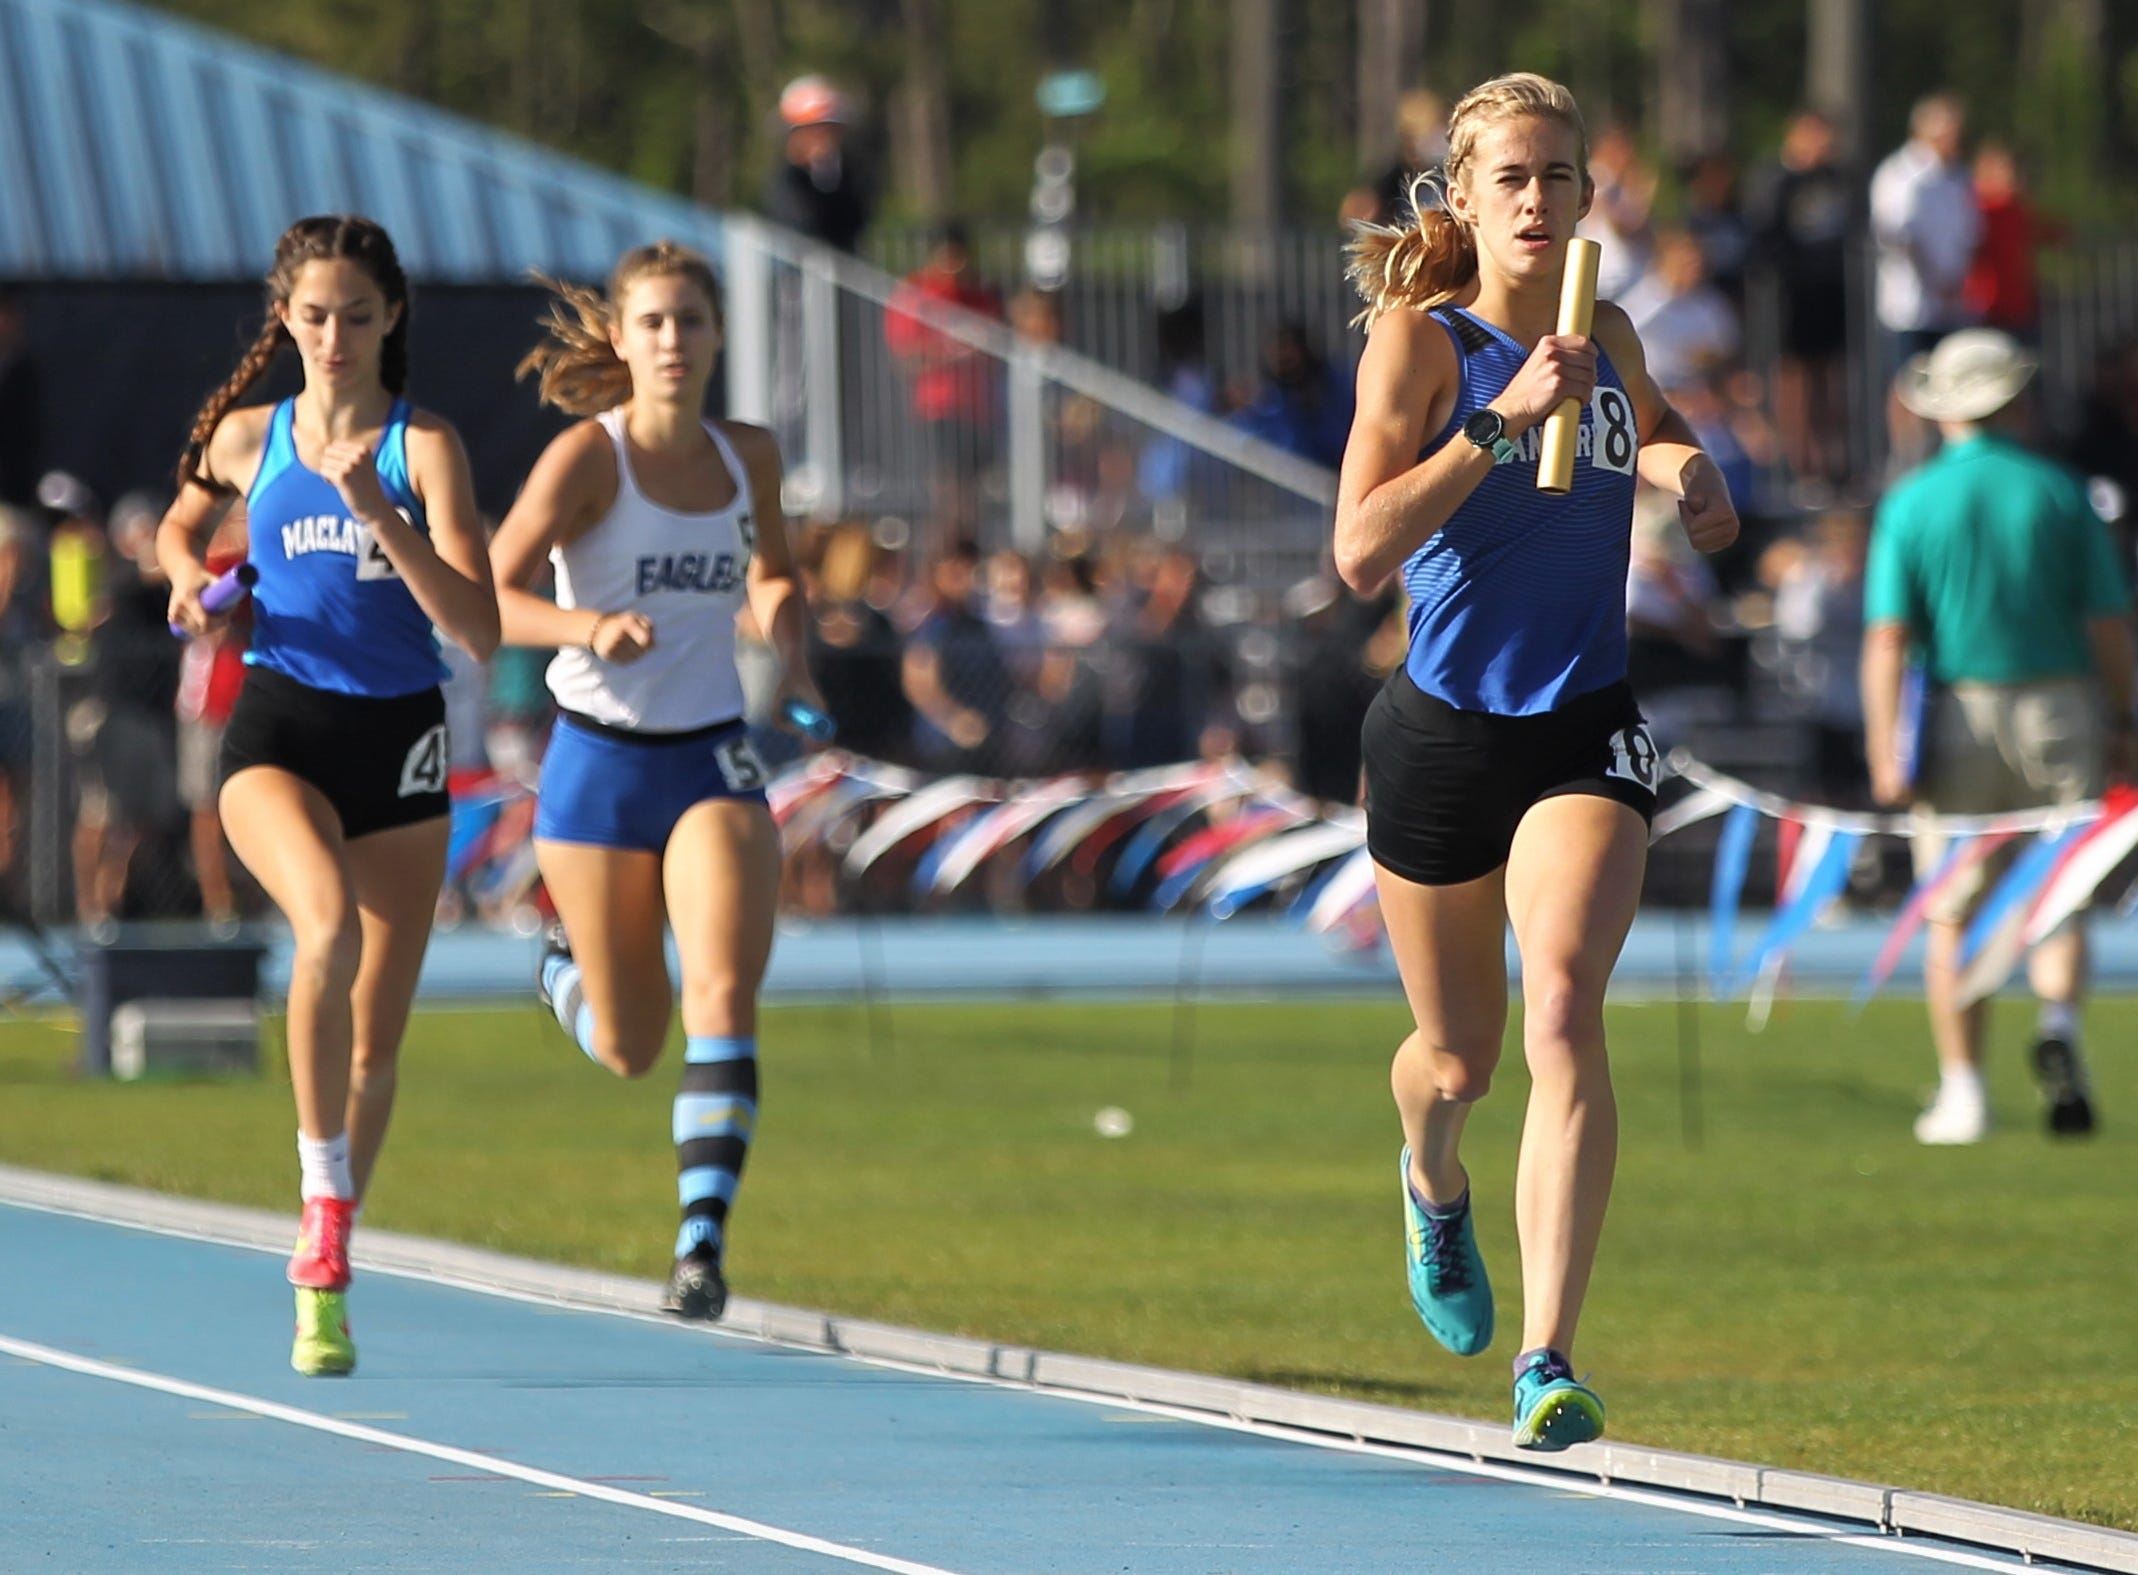 Canterbury's Jessica Edwards runs a 4x800 leg during the FHSAA Track and Field State Championships at UNF's Hodges Stadium in Jacksonville on May 4, 2019.